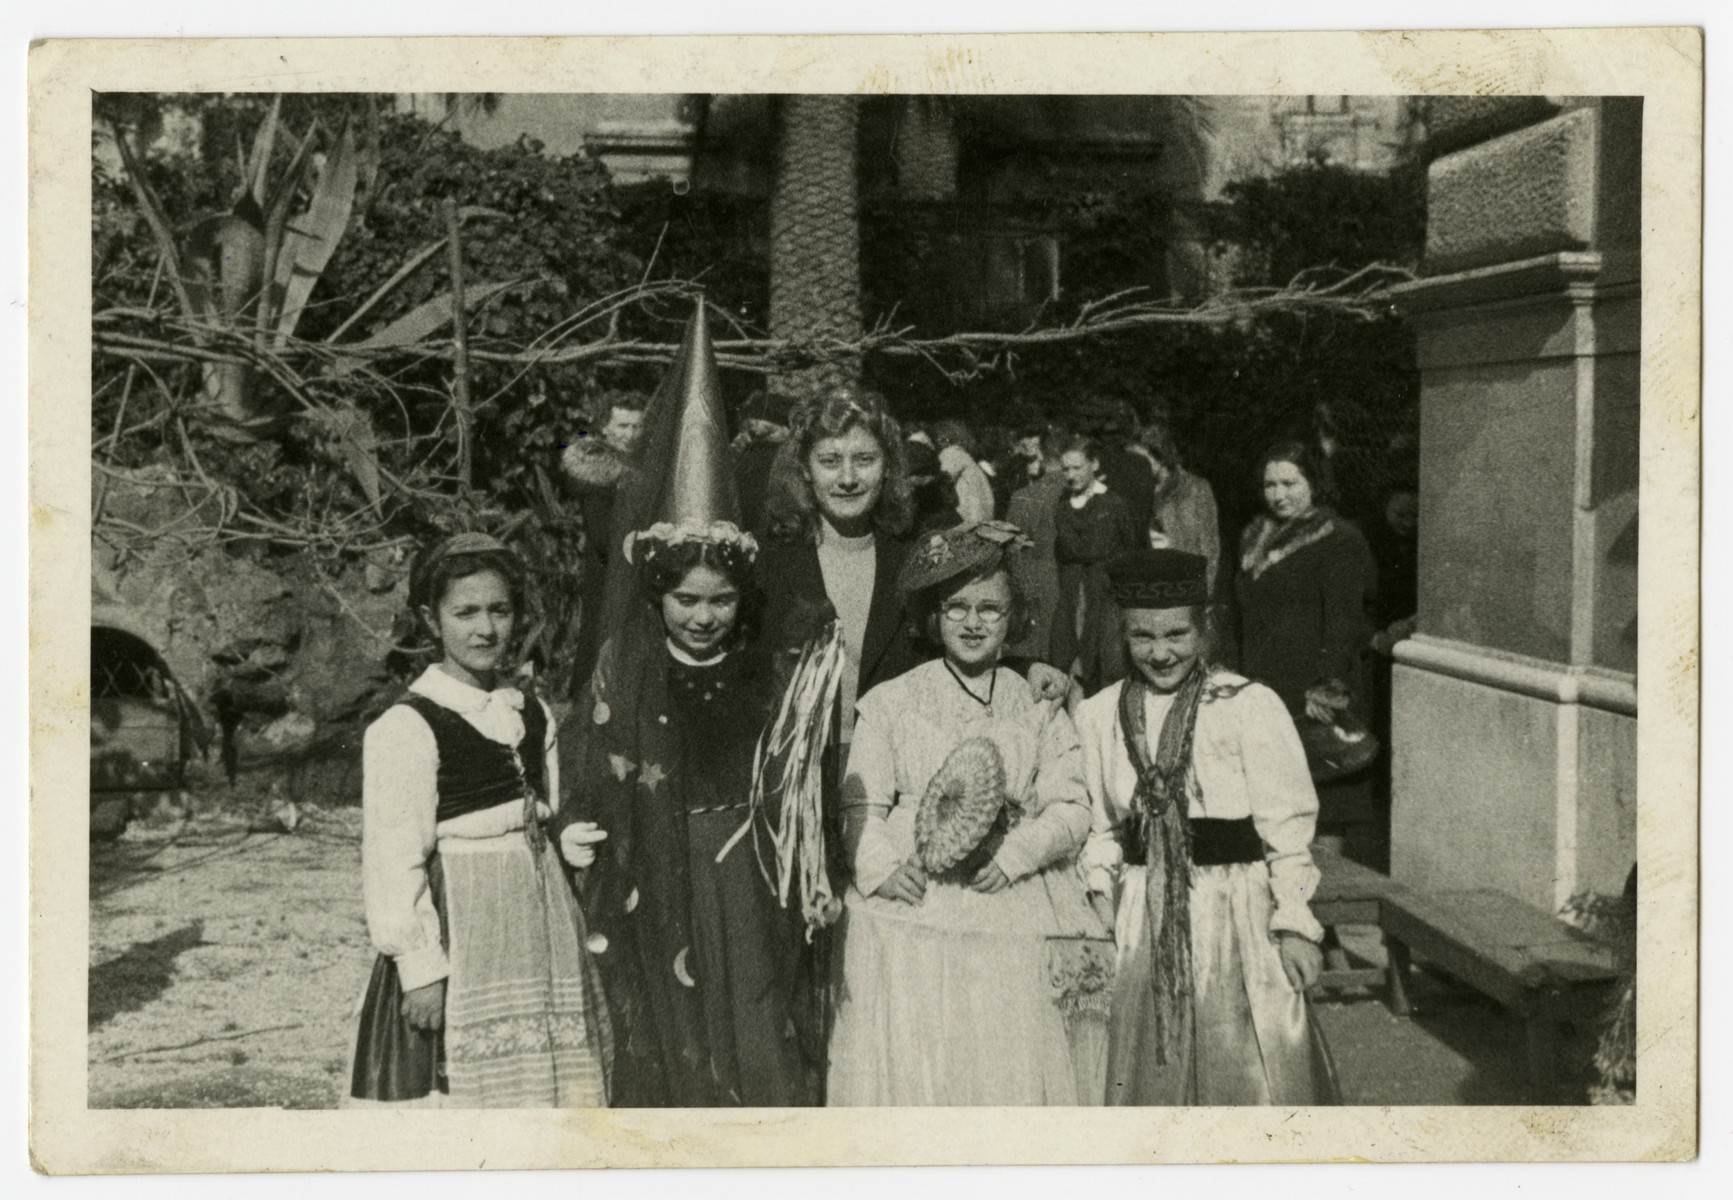 Lea Herlinger poses in costume with her friends while attending a convent school on false papers.